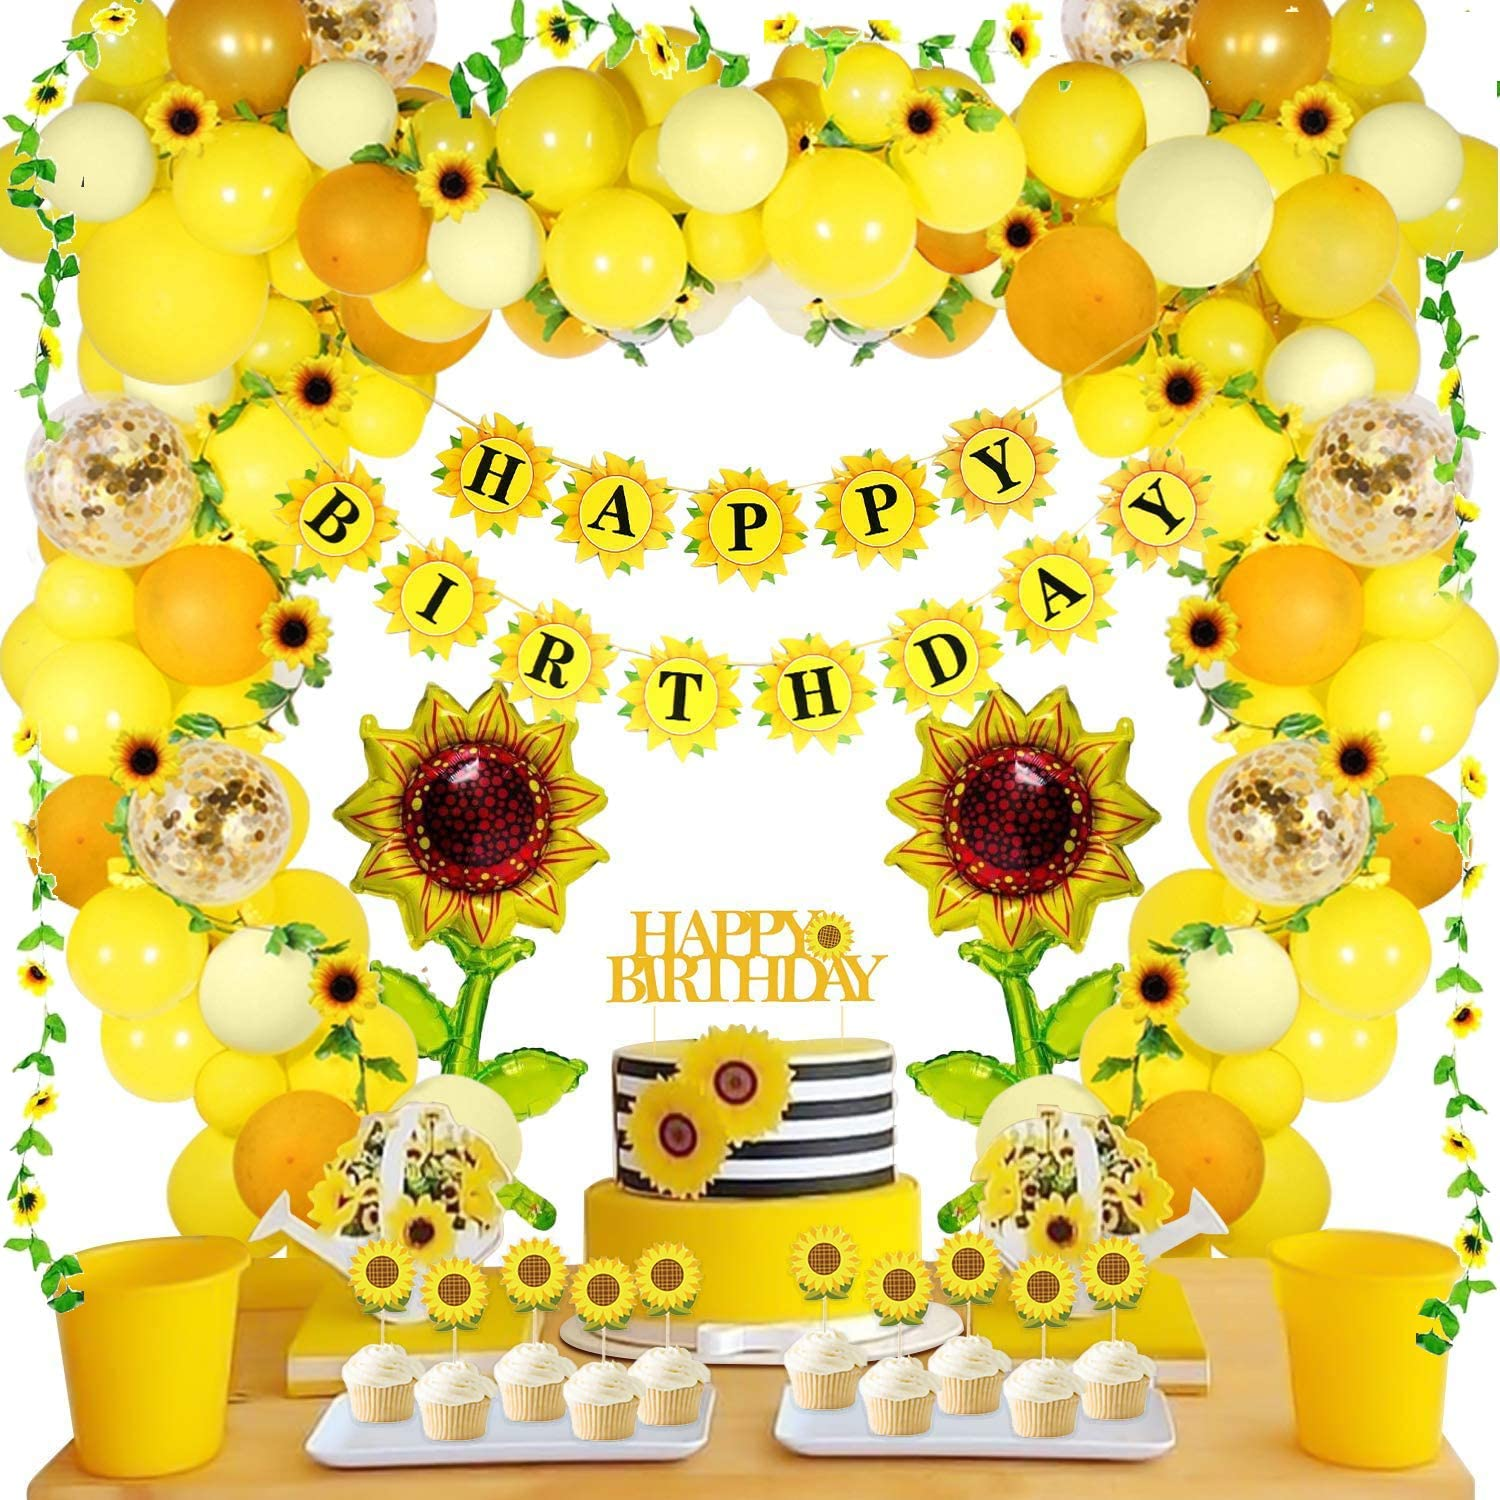 105 PCS Sunflower Birthday Decorations Sunflower Party Supplies, Sunflower Banner, Artificial Sunflower Garland, Sunflower Cake Toppers,Sunflower Balloons for Birthday Party Wedding Baby Shower Decor